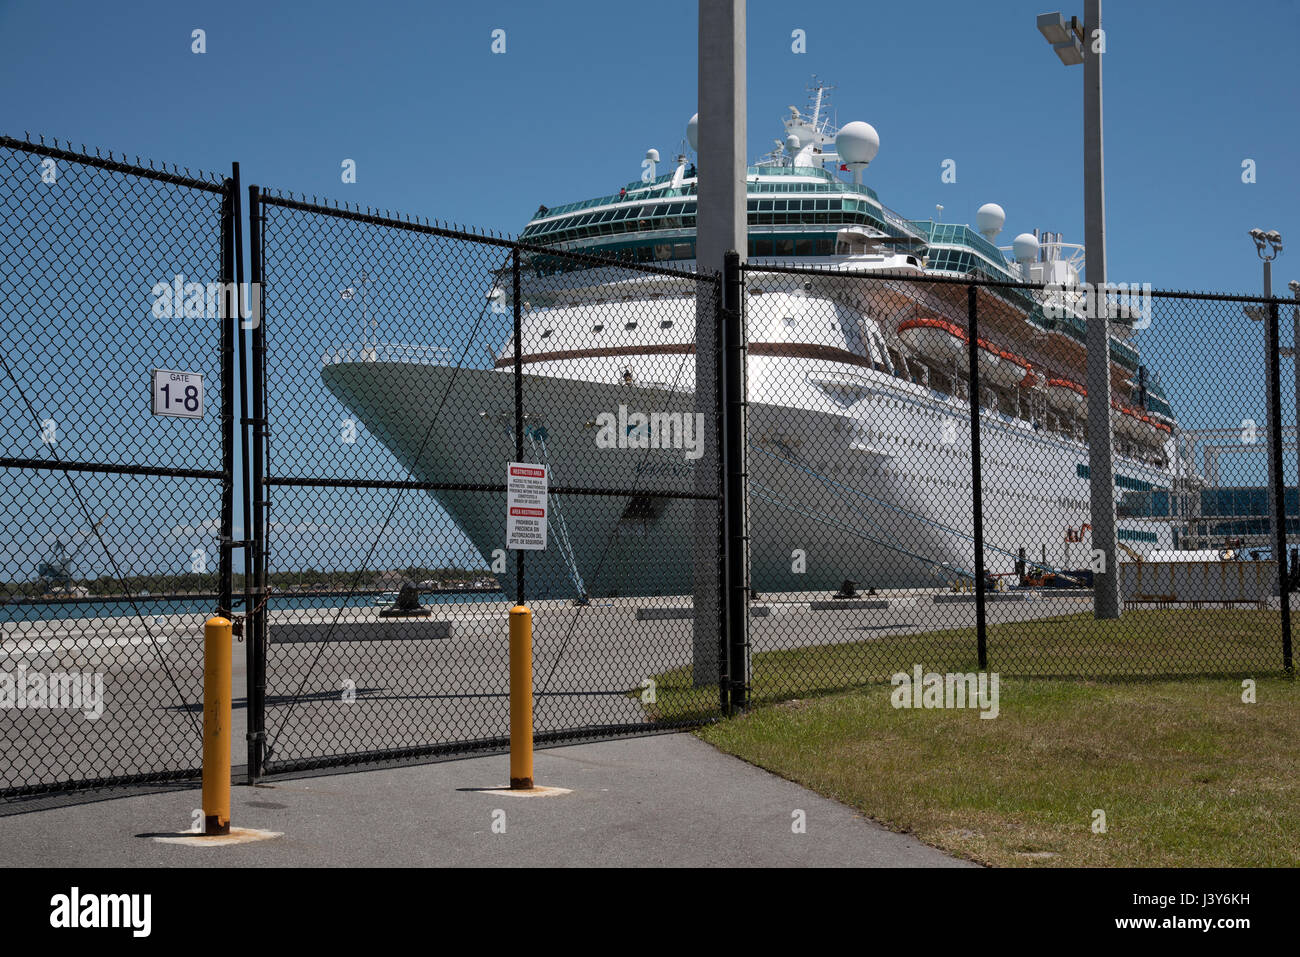 Security fence around a cruise ship on the quay at Port Canaveral Florida USA. April 2017. - Stock Image